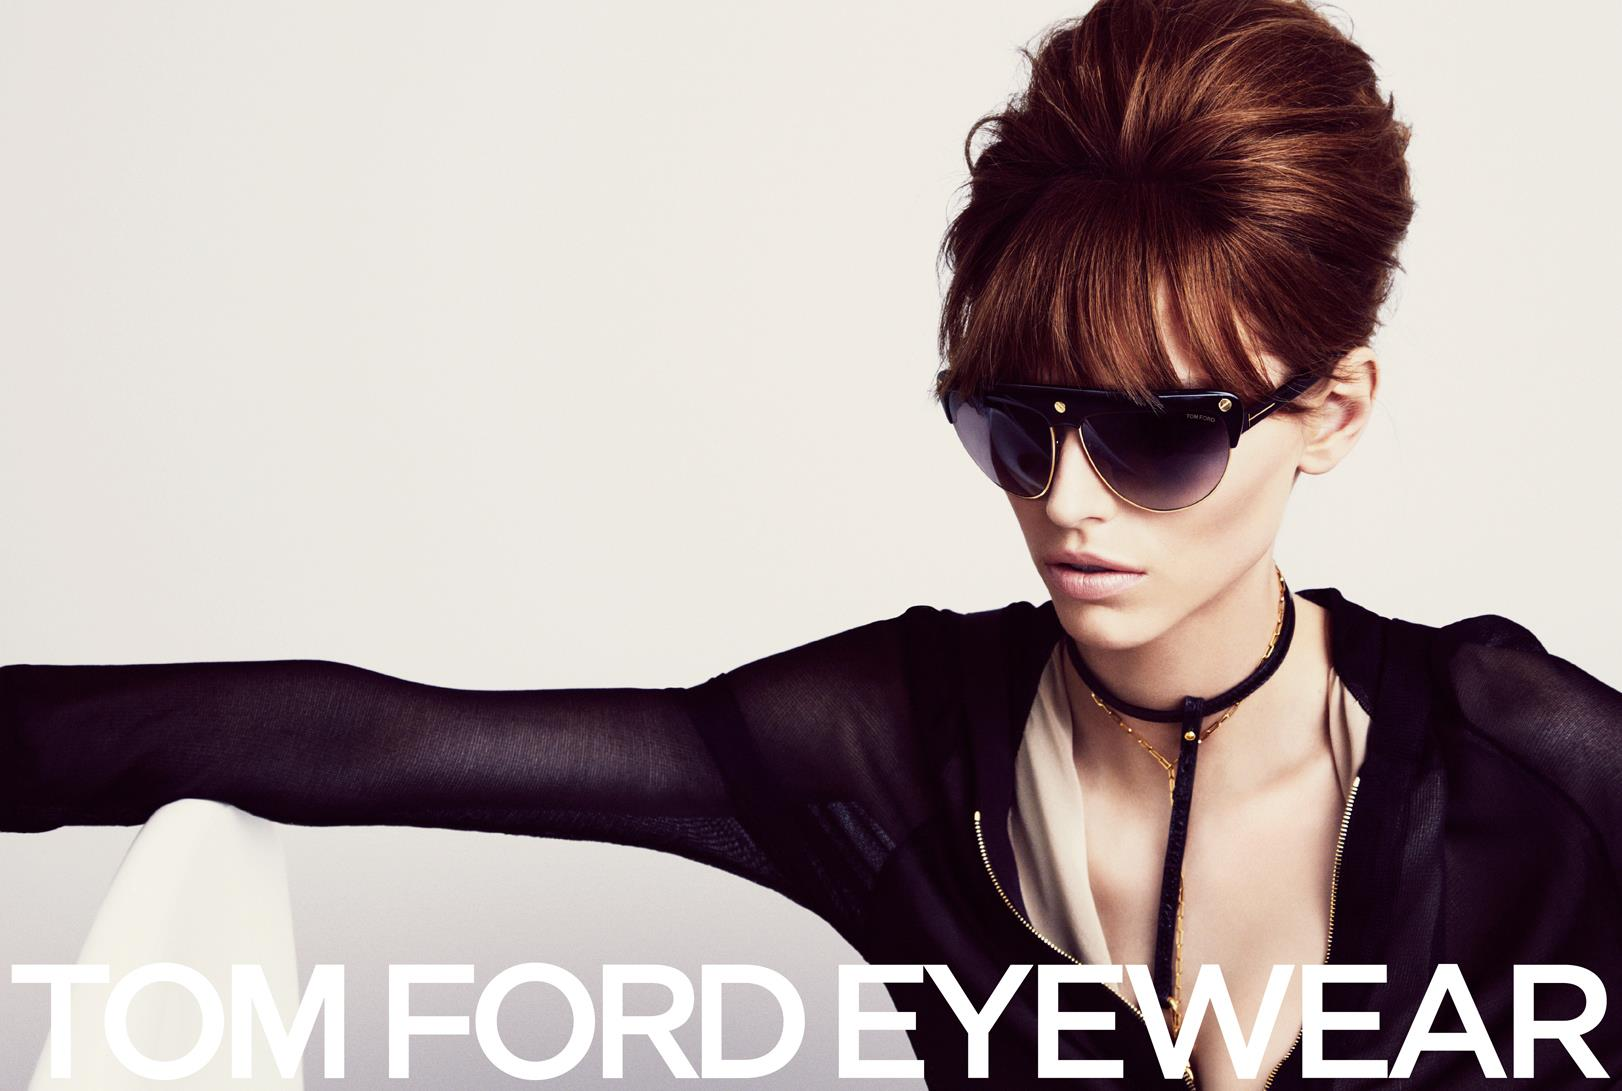 TOM FORD Spring/Summer 2013 Ad Campaign: Karlina Caune and Simon Van Meervenne (Hi Res) TFE SS13 CAMPAIGN